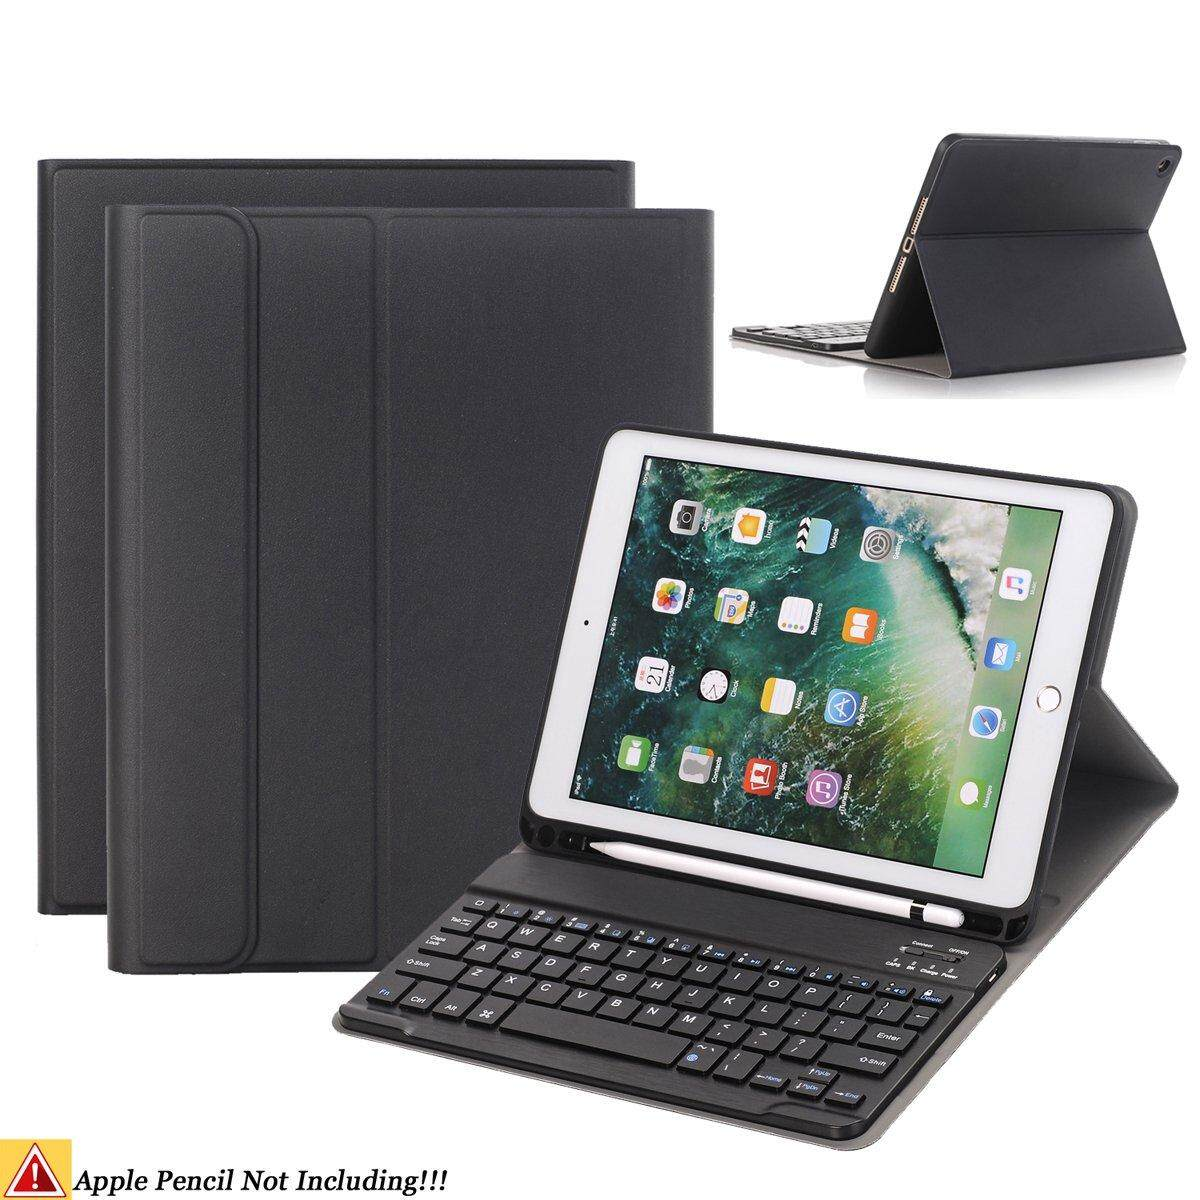 For Ipad Keyboard Case,slim Soft Tpu Case Built-In Pencil Holder With Removable Detachable Keyboard For Ipad Mini 5 2019/ipad Air 3 10.5 2019/ipad Pro 11/ Ipad 9.7 2018/ipad 2017 By Zhuyuli Co Ltd.